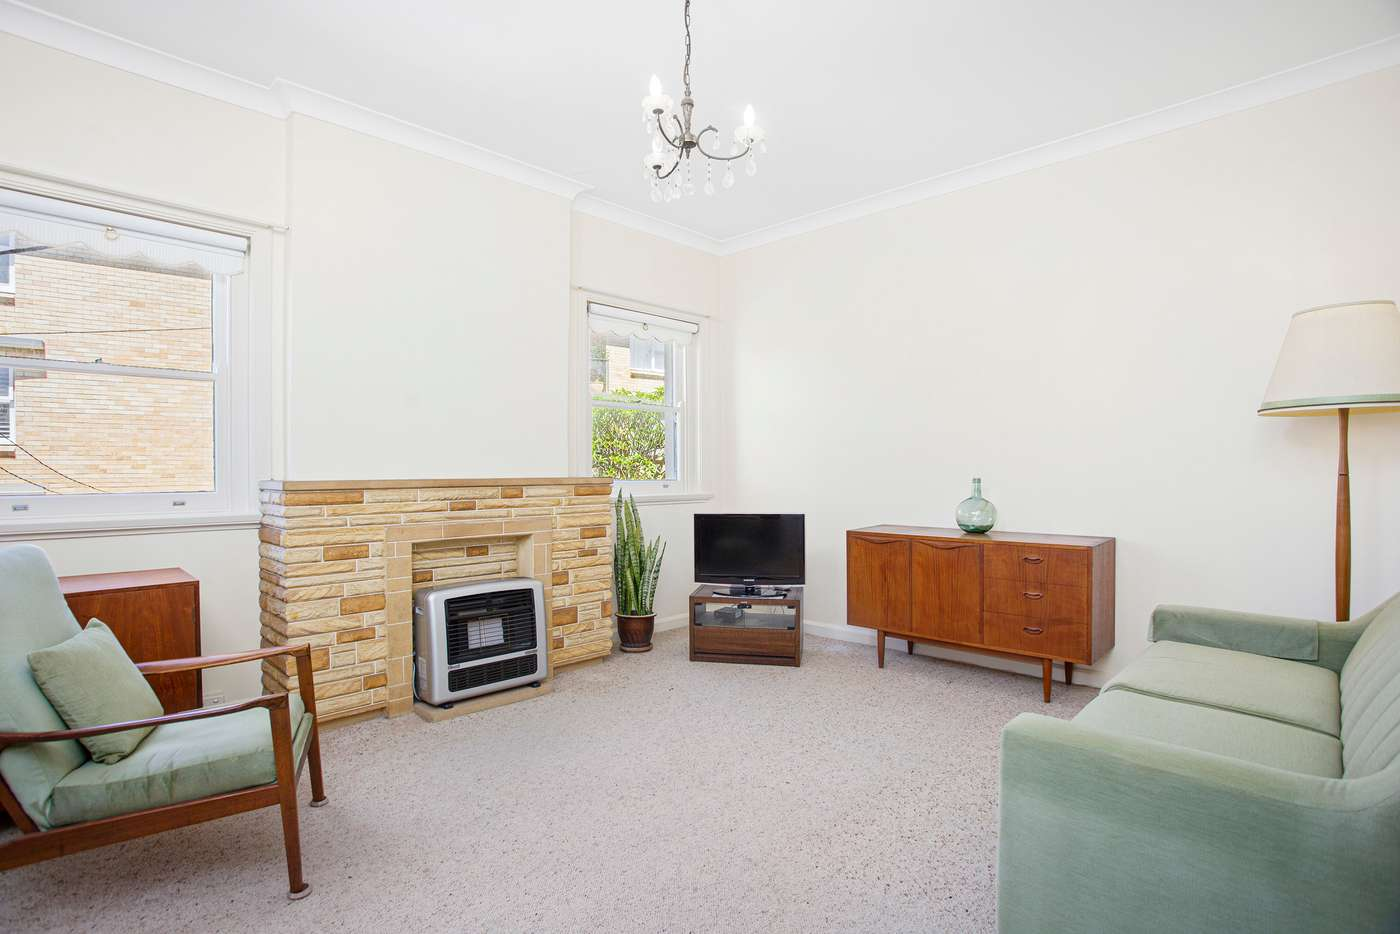 Fifth view of Homely apartment listing, 3/8 Fairlight Crescent, Fairlight NSW 2094